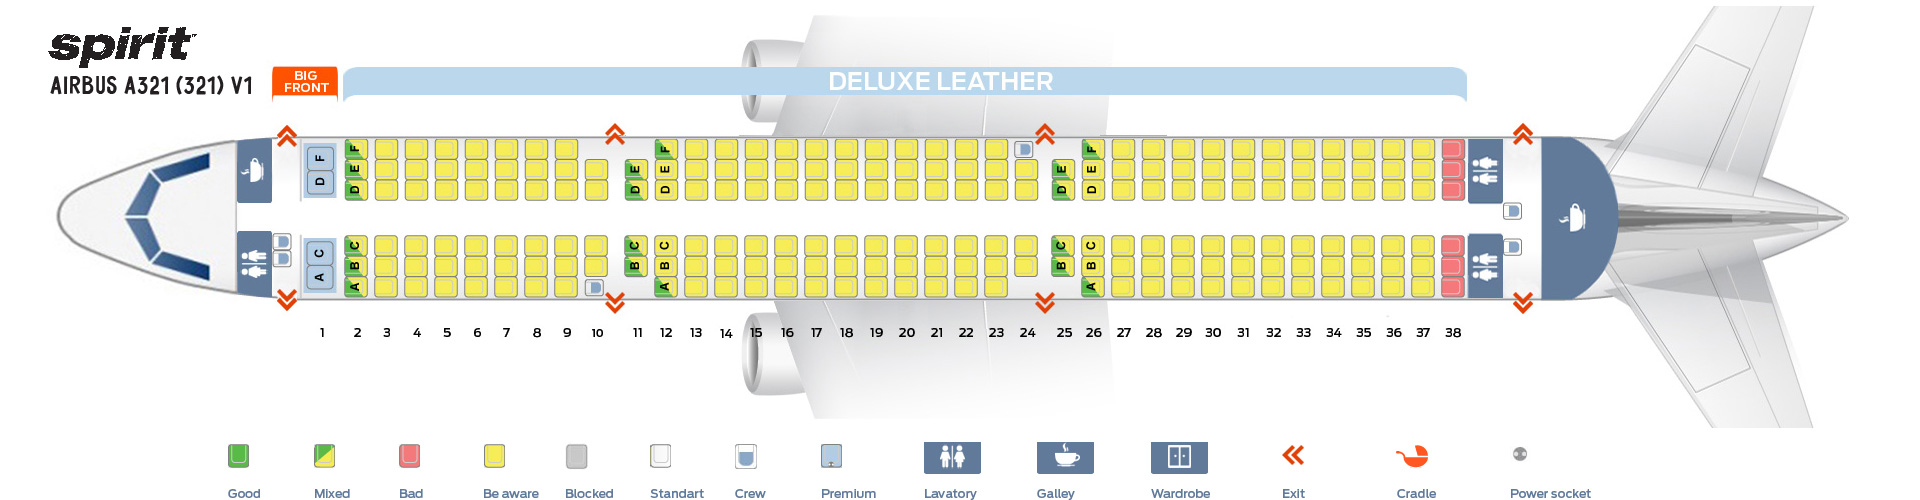 Seat Map and Seating Chart Airbus A321 200 Spirit Airlines V1